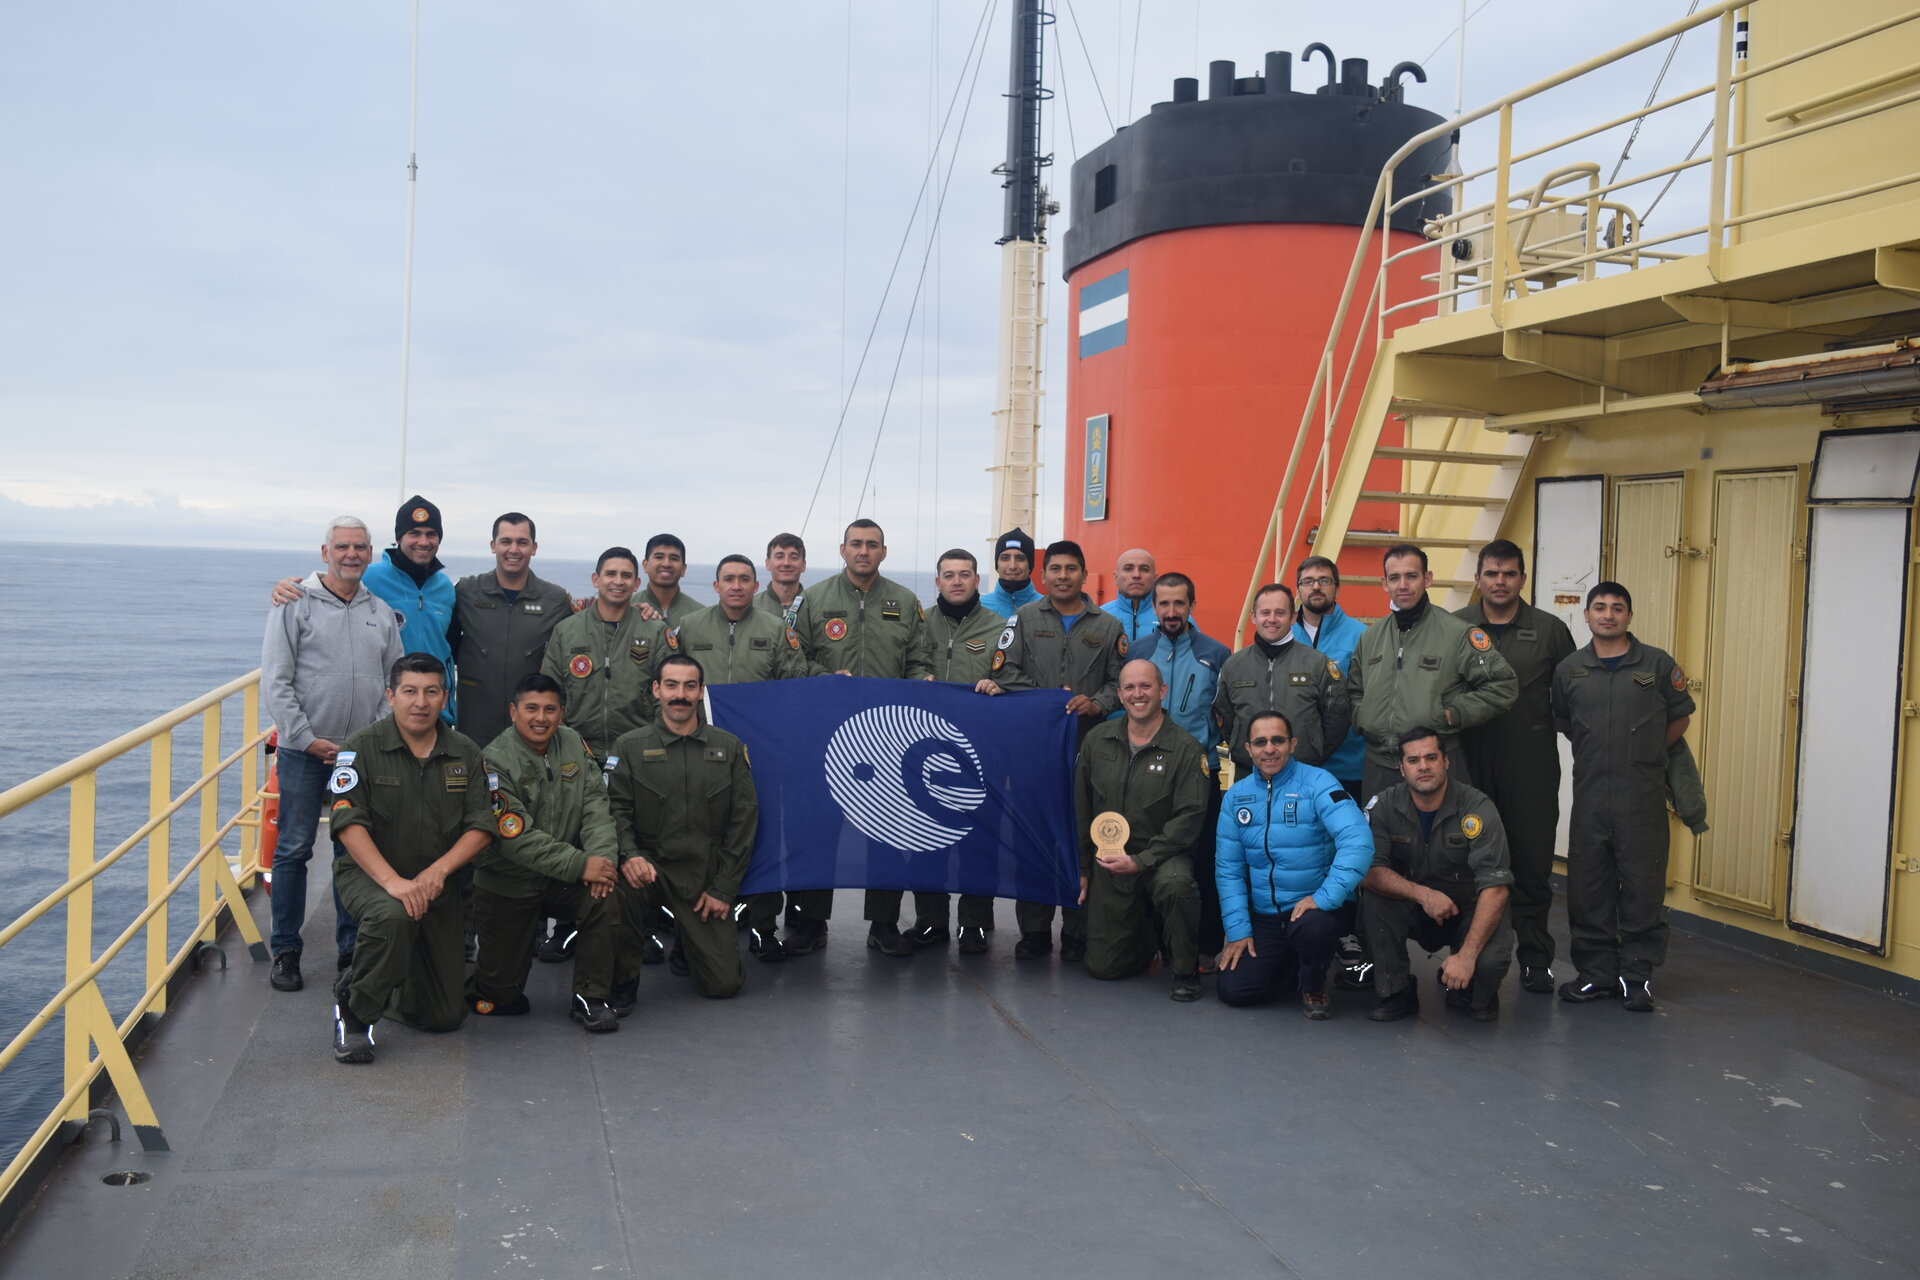 Belgrano base crew and Tempus team on the ARA Alte Irizar icebreaker